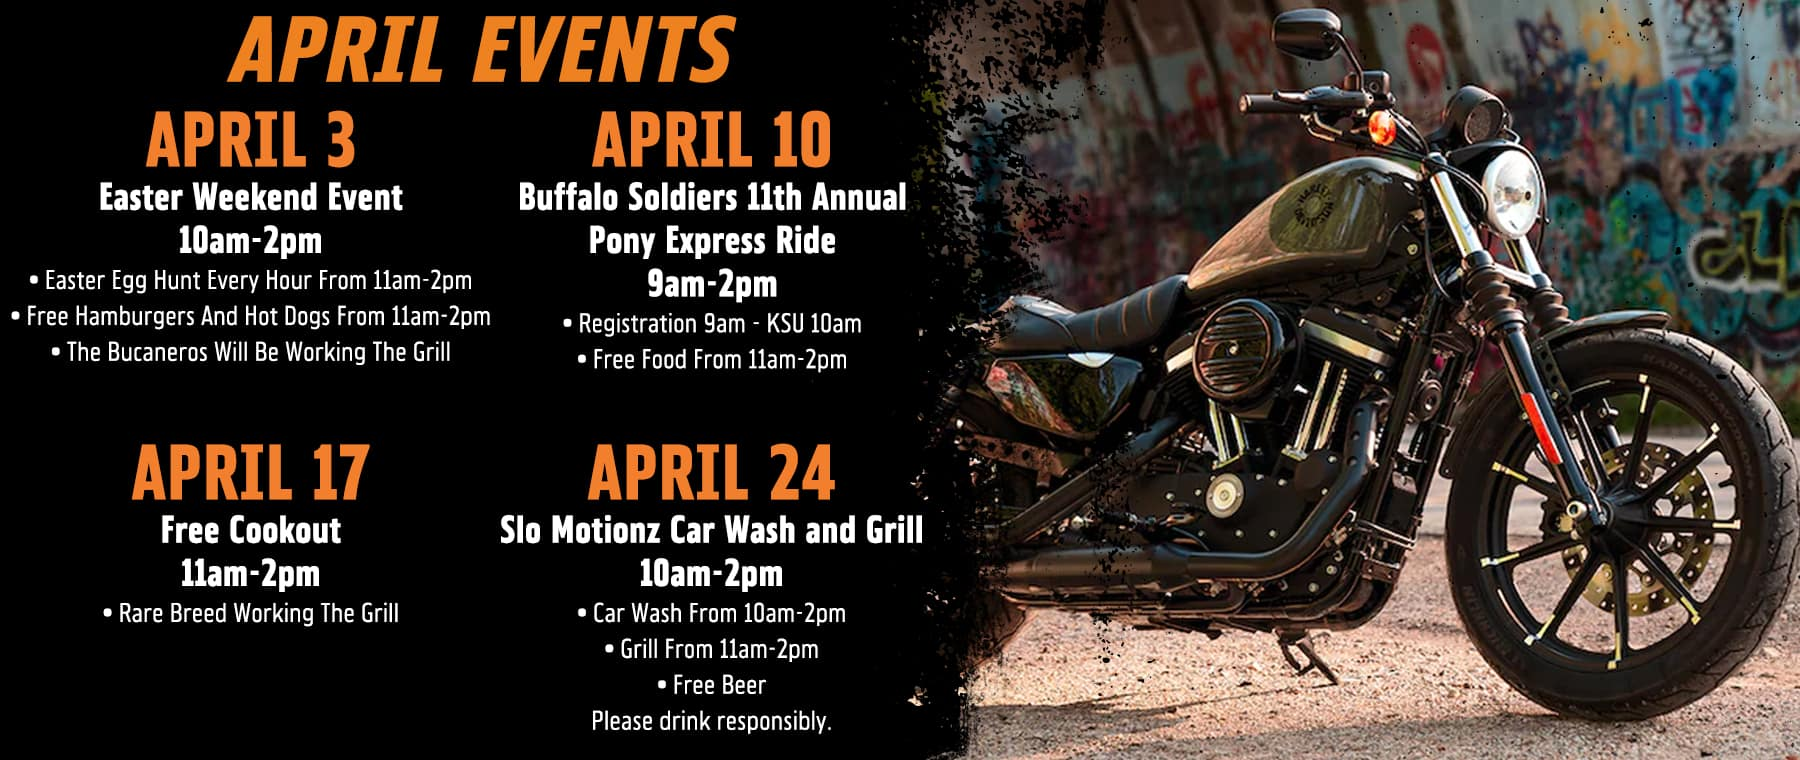 April Events at Fort Bragg HD